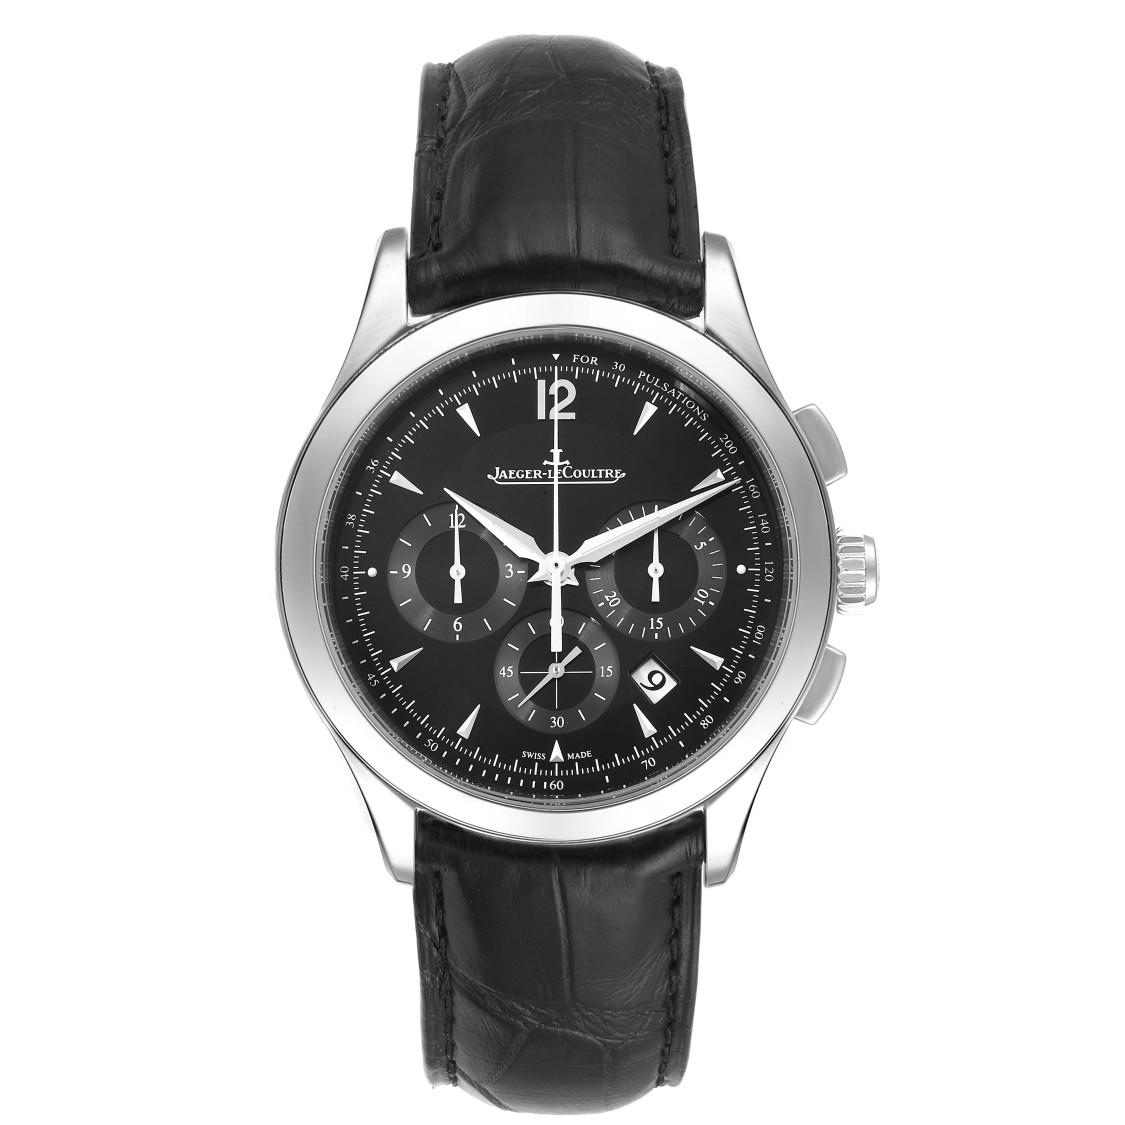 Jaeger-lecoultre Master Chronograph Mens Watch Q1538470 Box Papers In Not Applicable